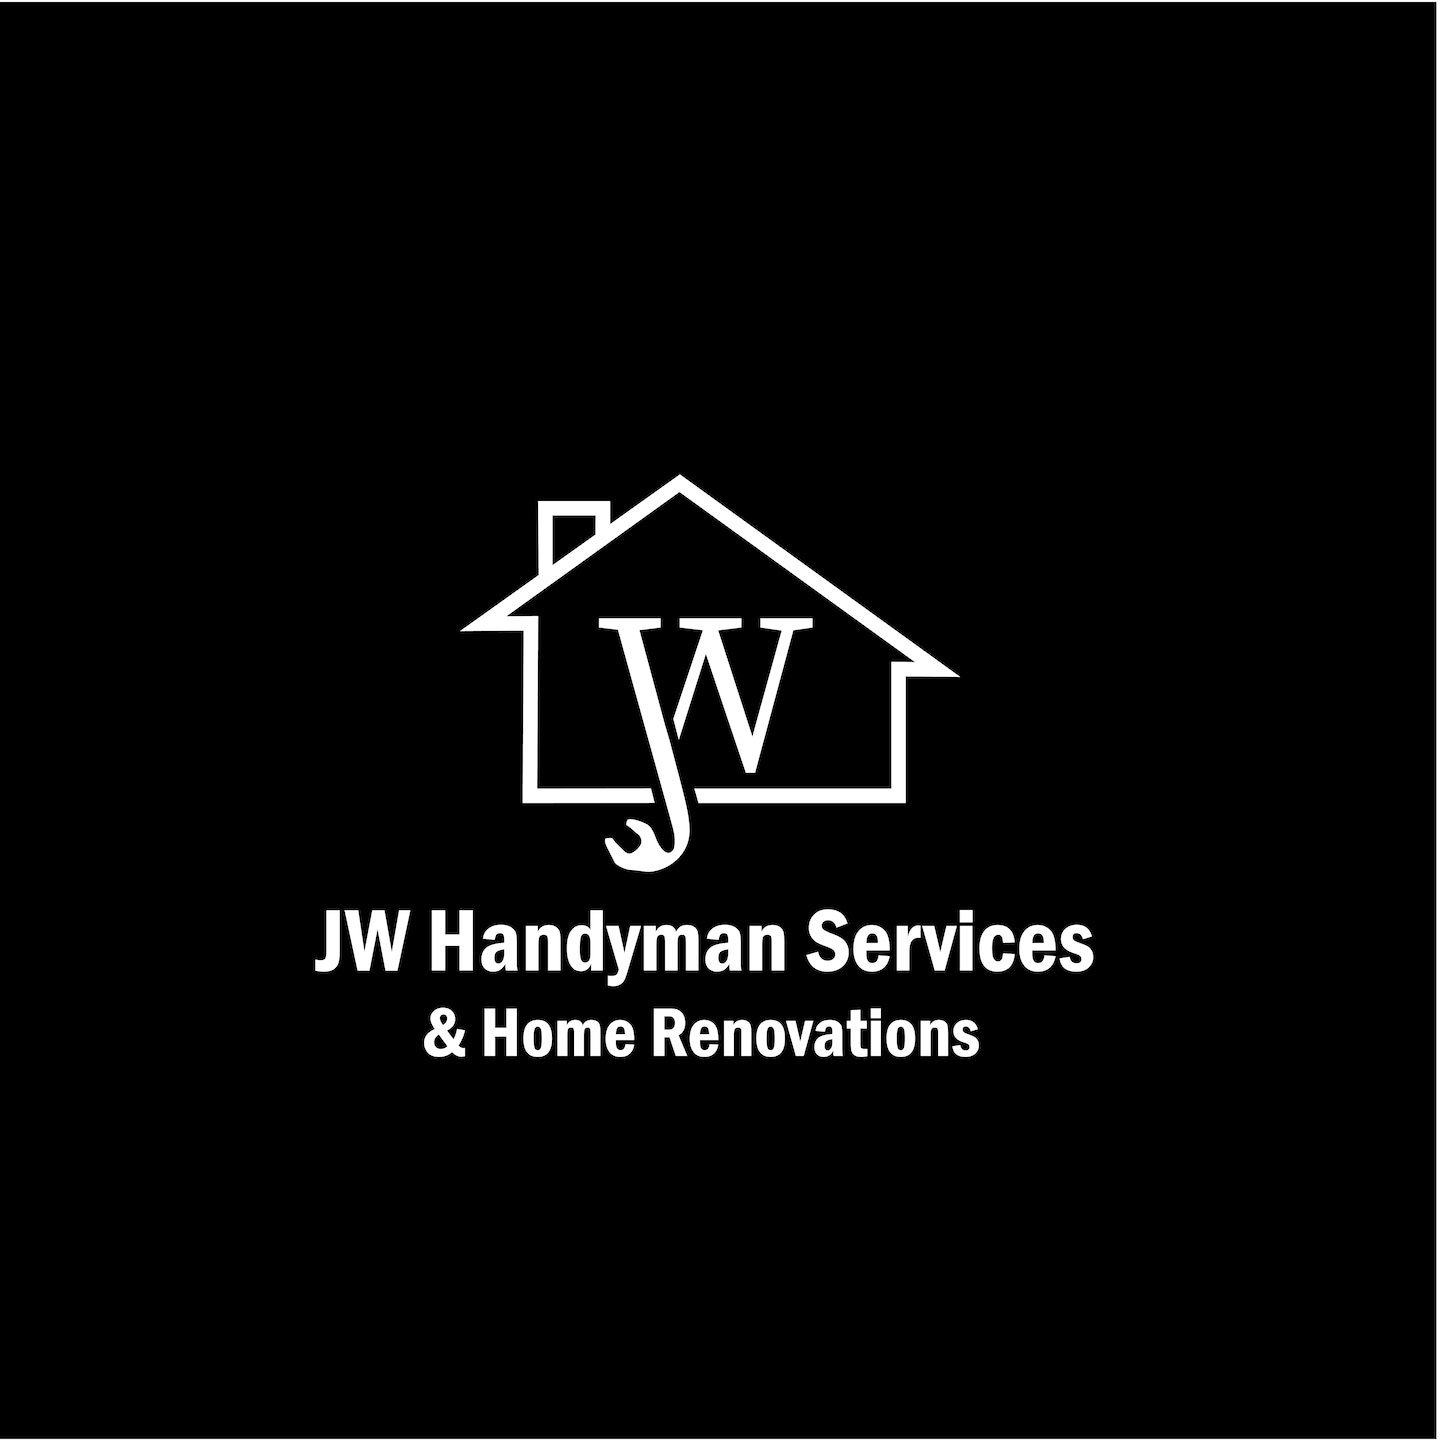 JW Handyman Services and Home Renovations